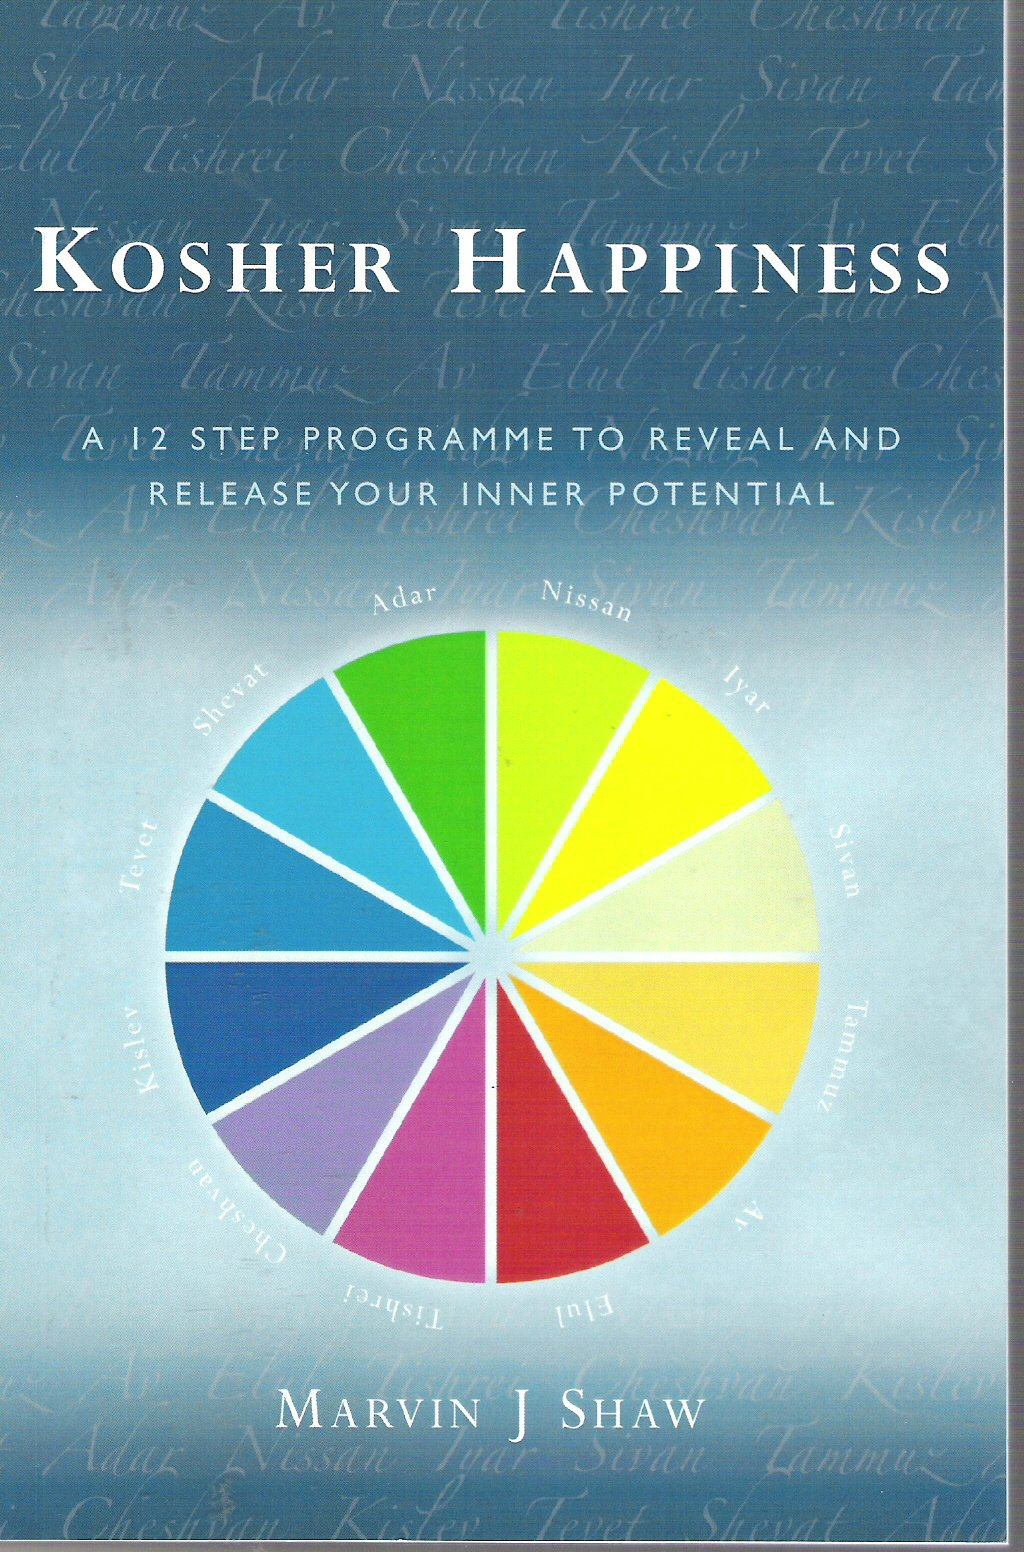 Kosher Happiness: A 12 Step Programme to Reveal and Release Your Inner Potential